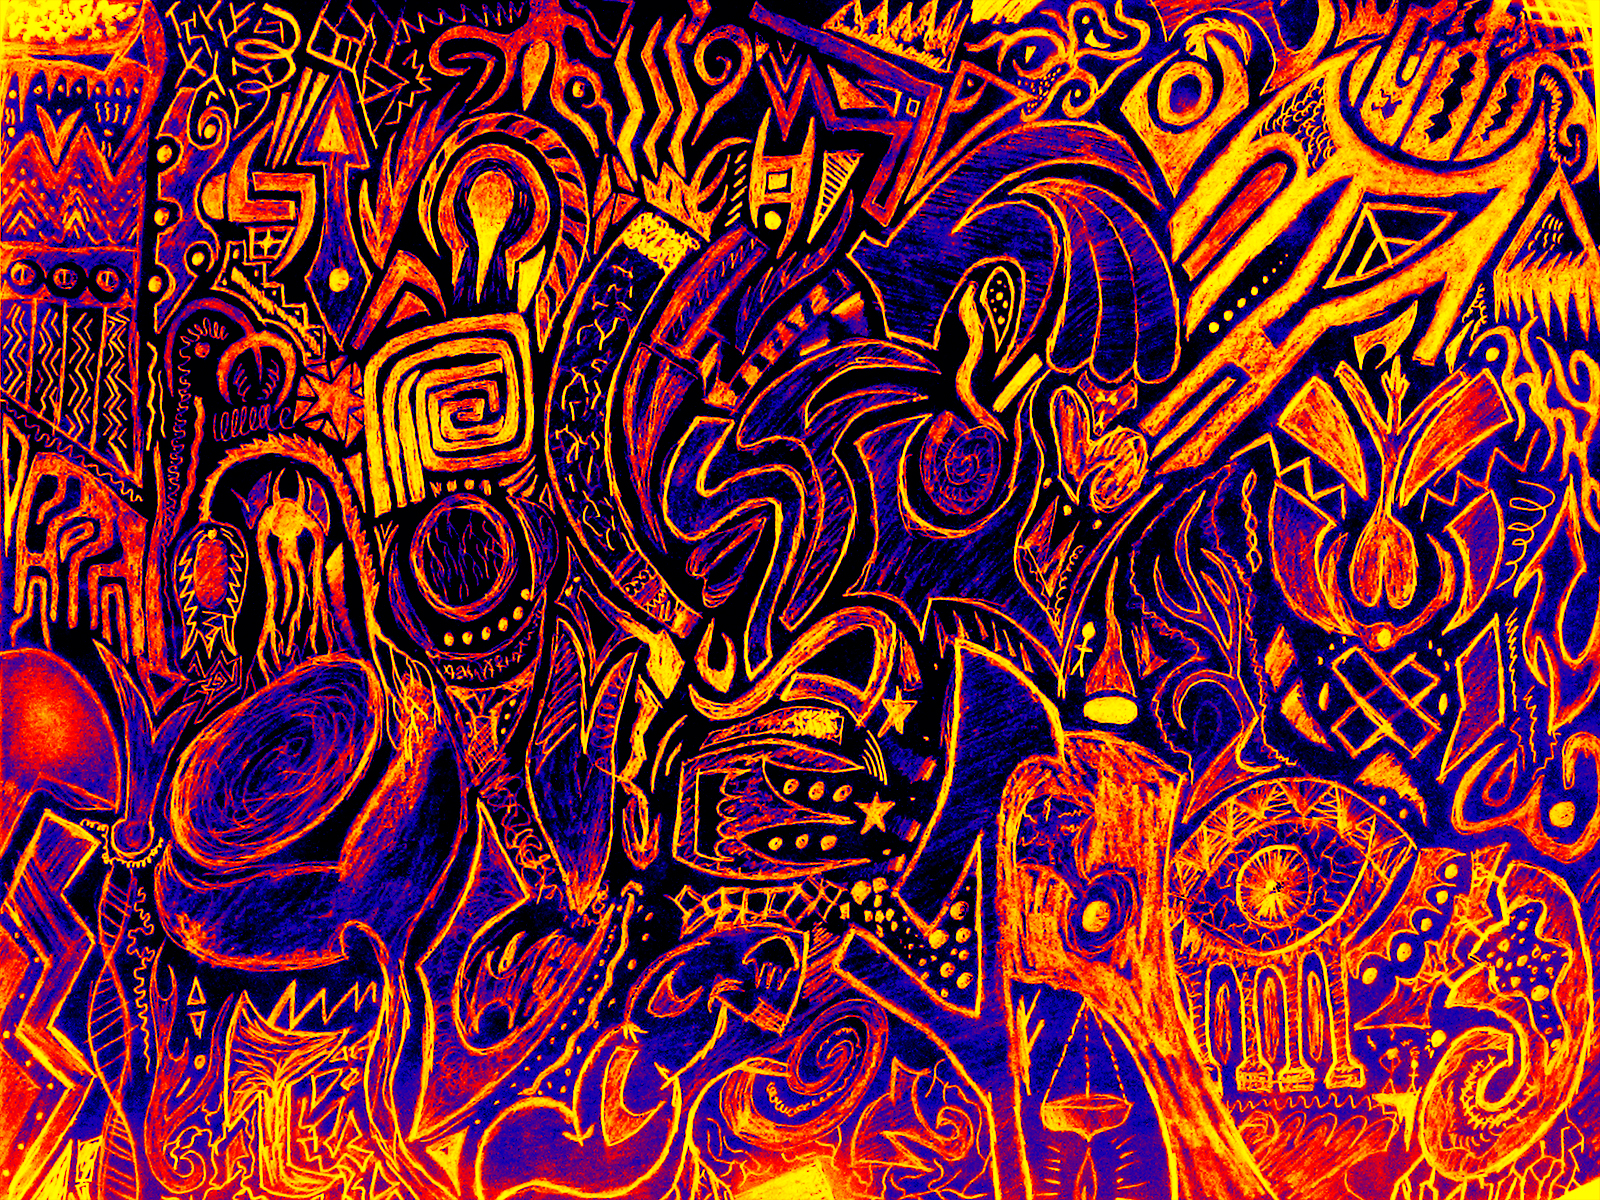 Psychedelic Wallpaper 1960